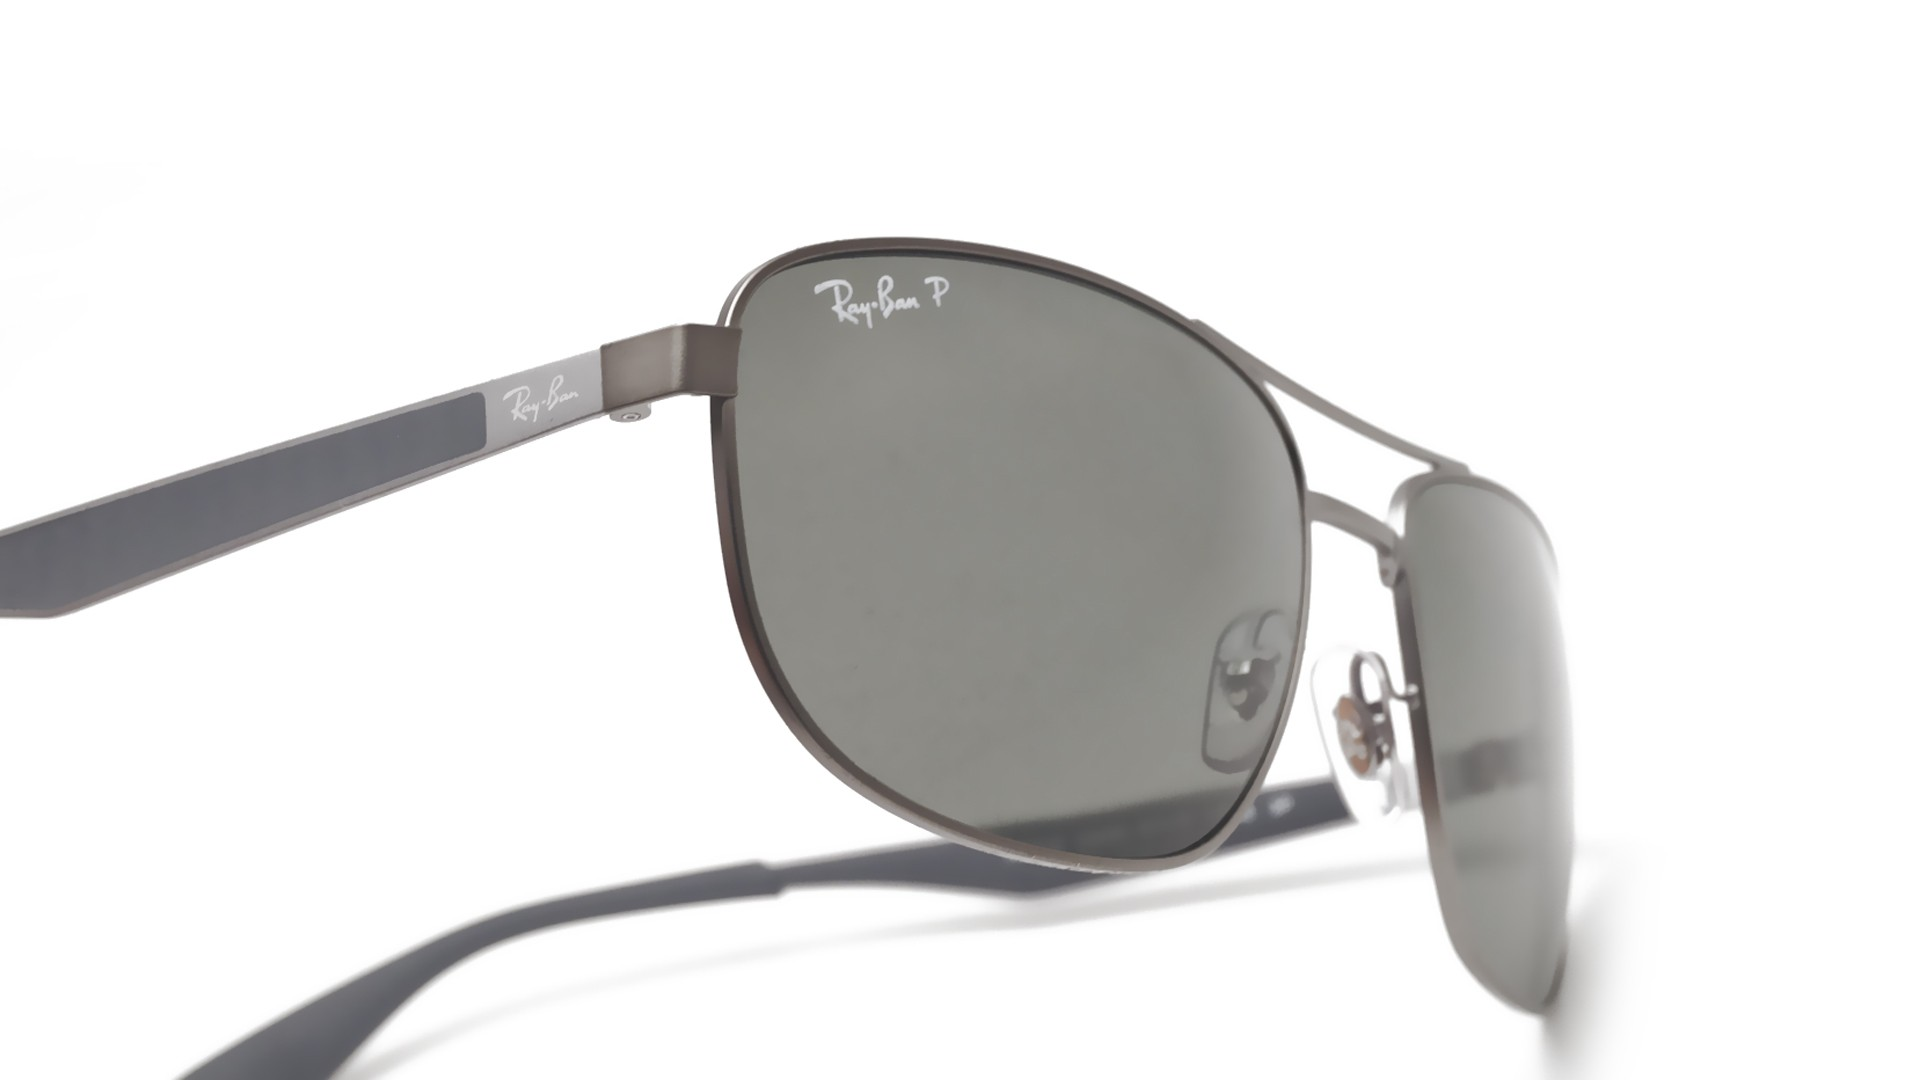 1c73046390b Sunglasses Ray-Ban RB3528 029 9A 61-17 Silver Large Polarized